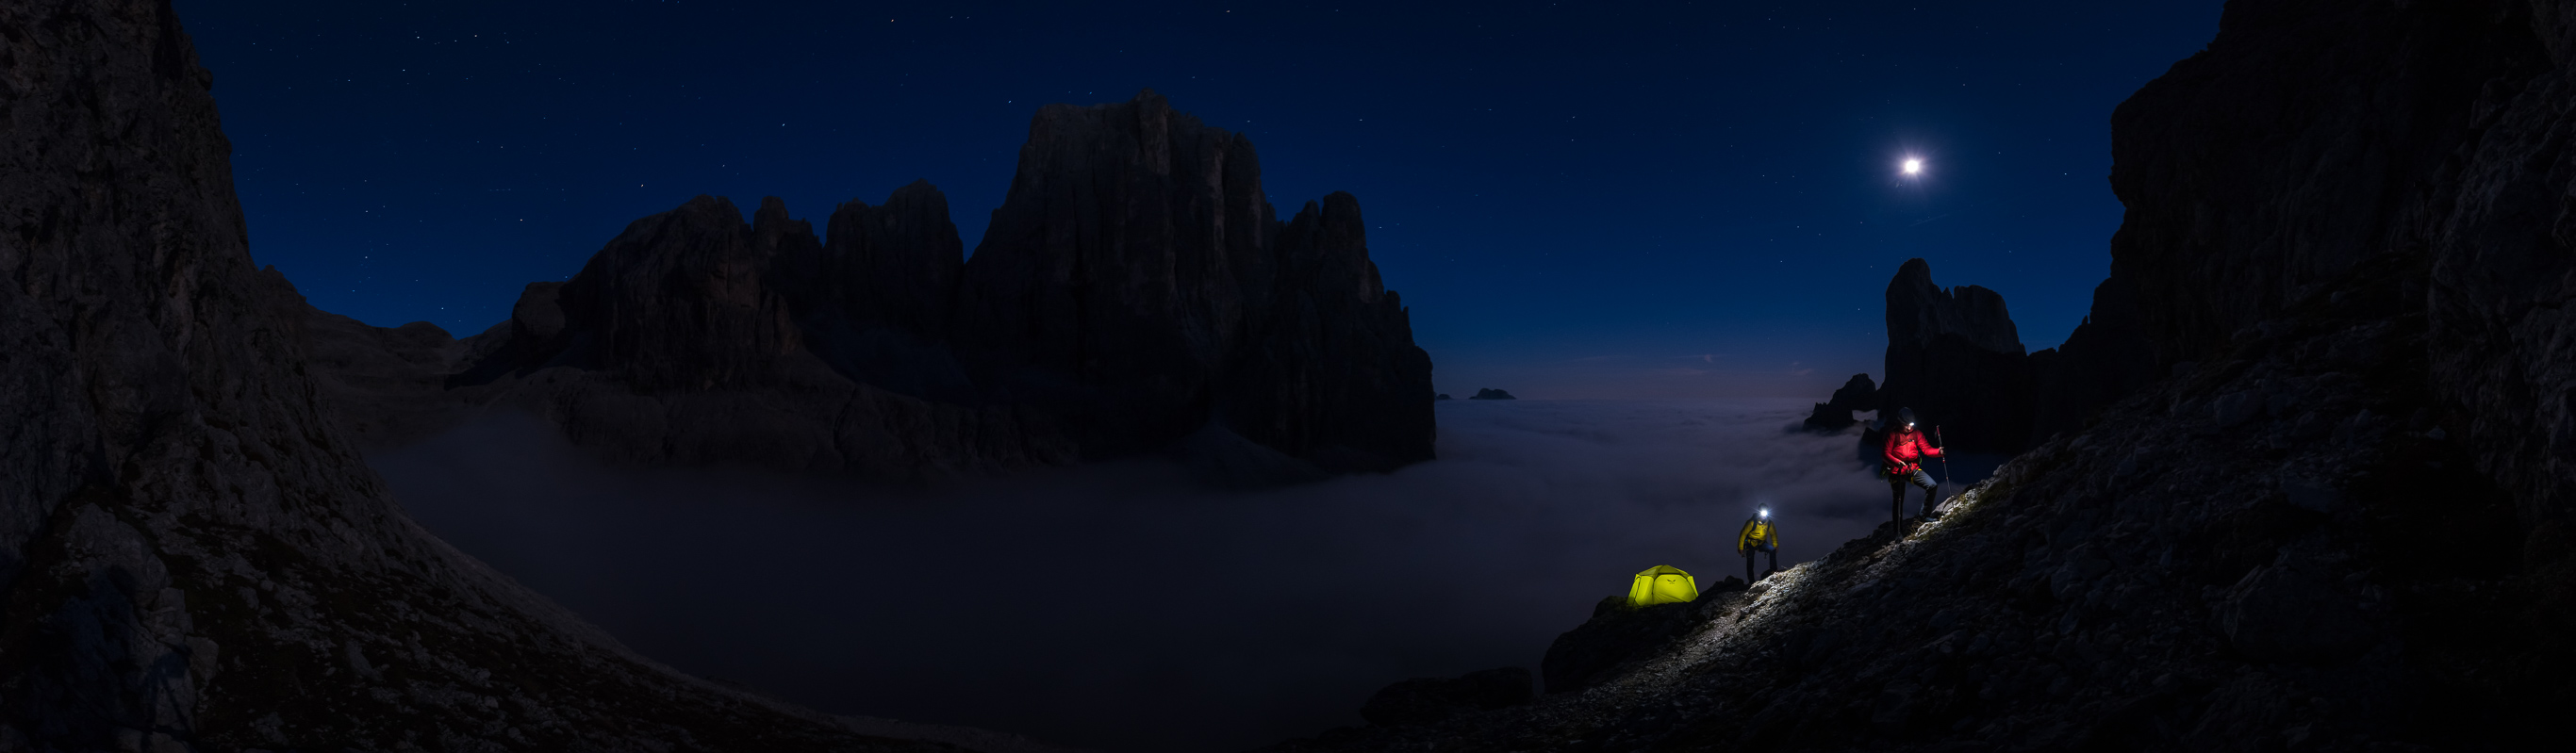 Night Panorama